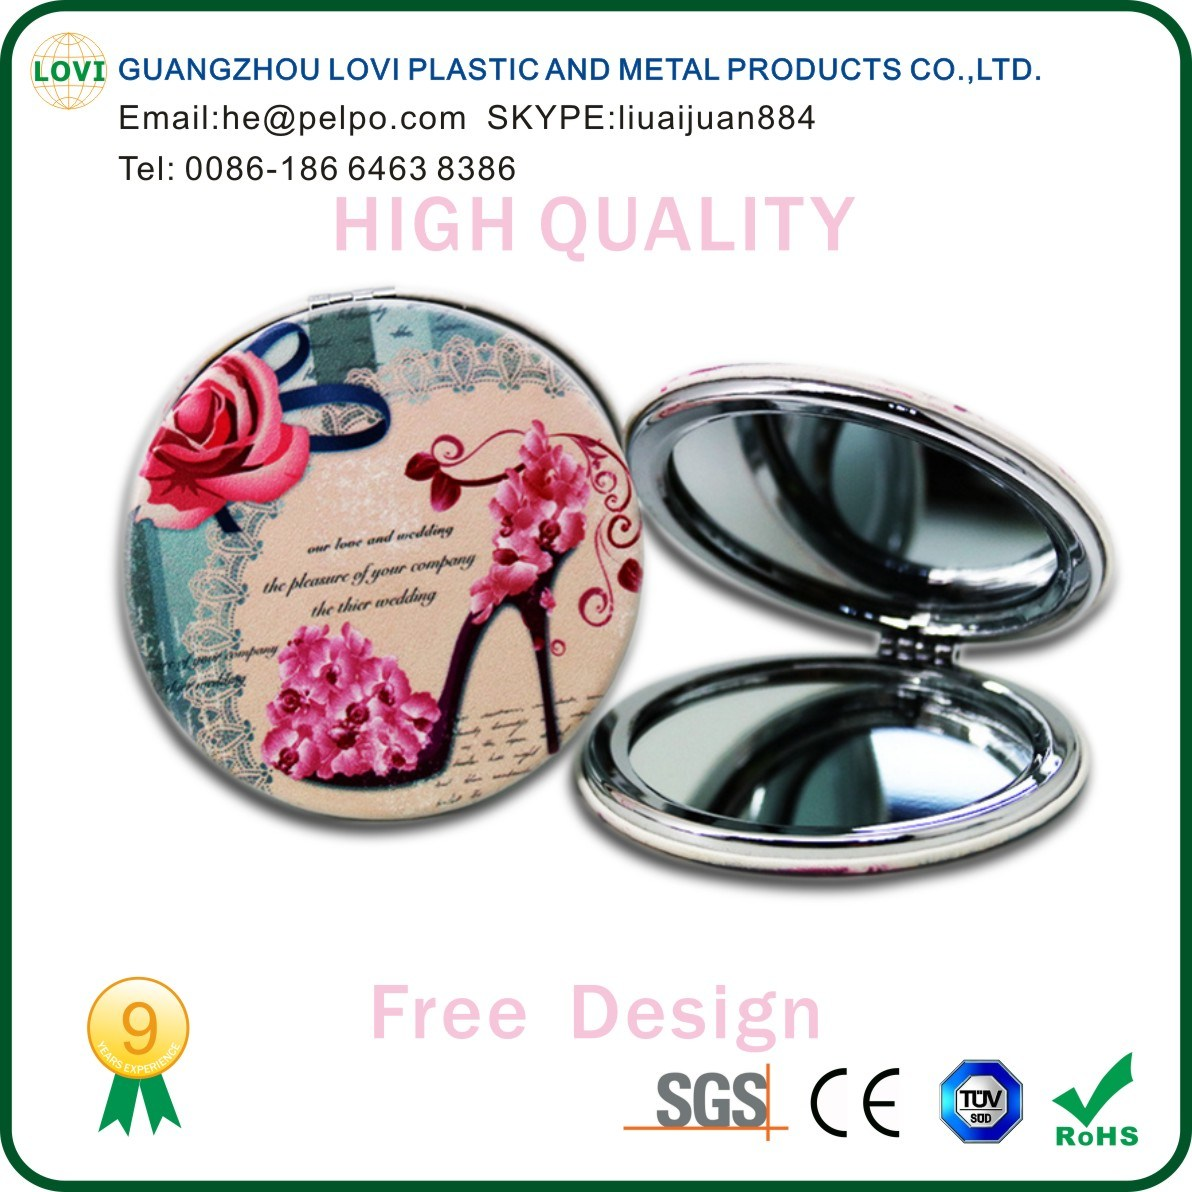 Pocket Mirror, Wholesale Pocket Mirror, Pocket Makeup Mirror, Cosmetic Pocket Mirror